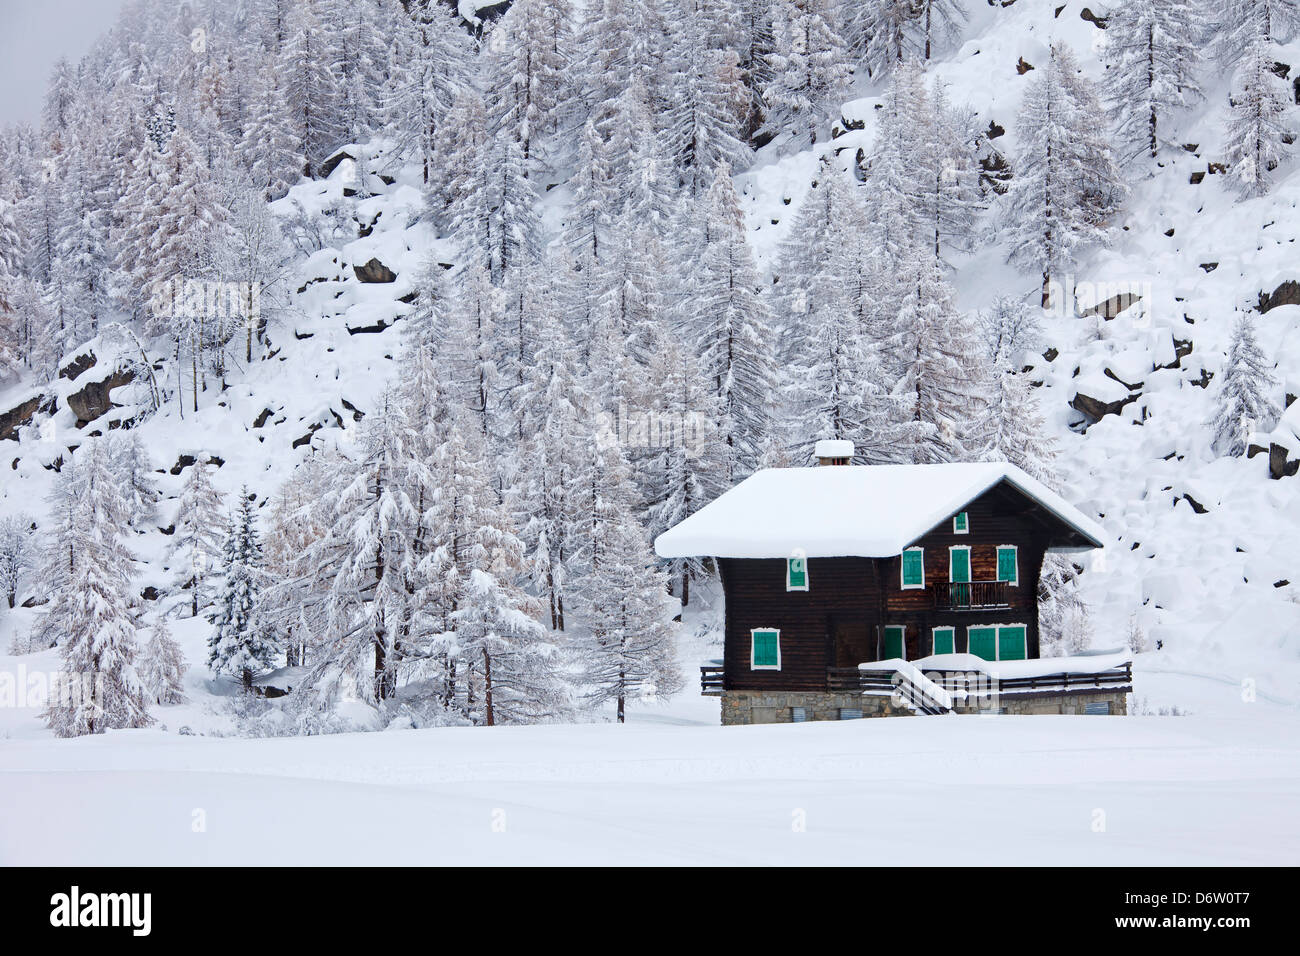 Wooden chalet in the snow in winter in the Gran Paradiso National Park, Valle d'Aosta, Italy - Stock Image